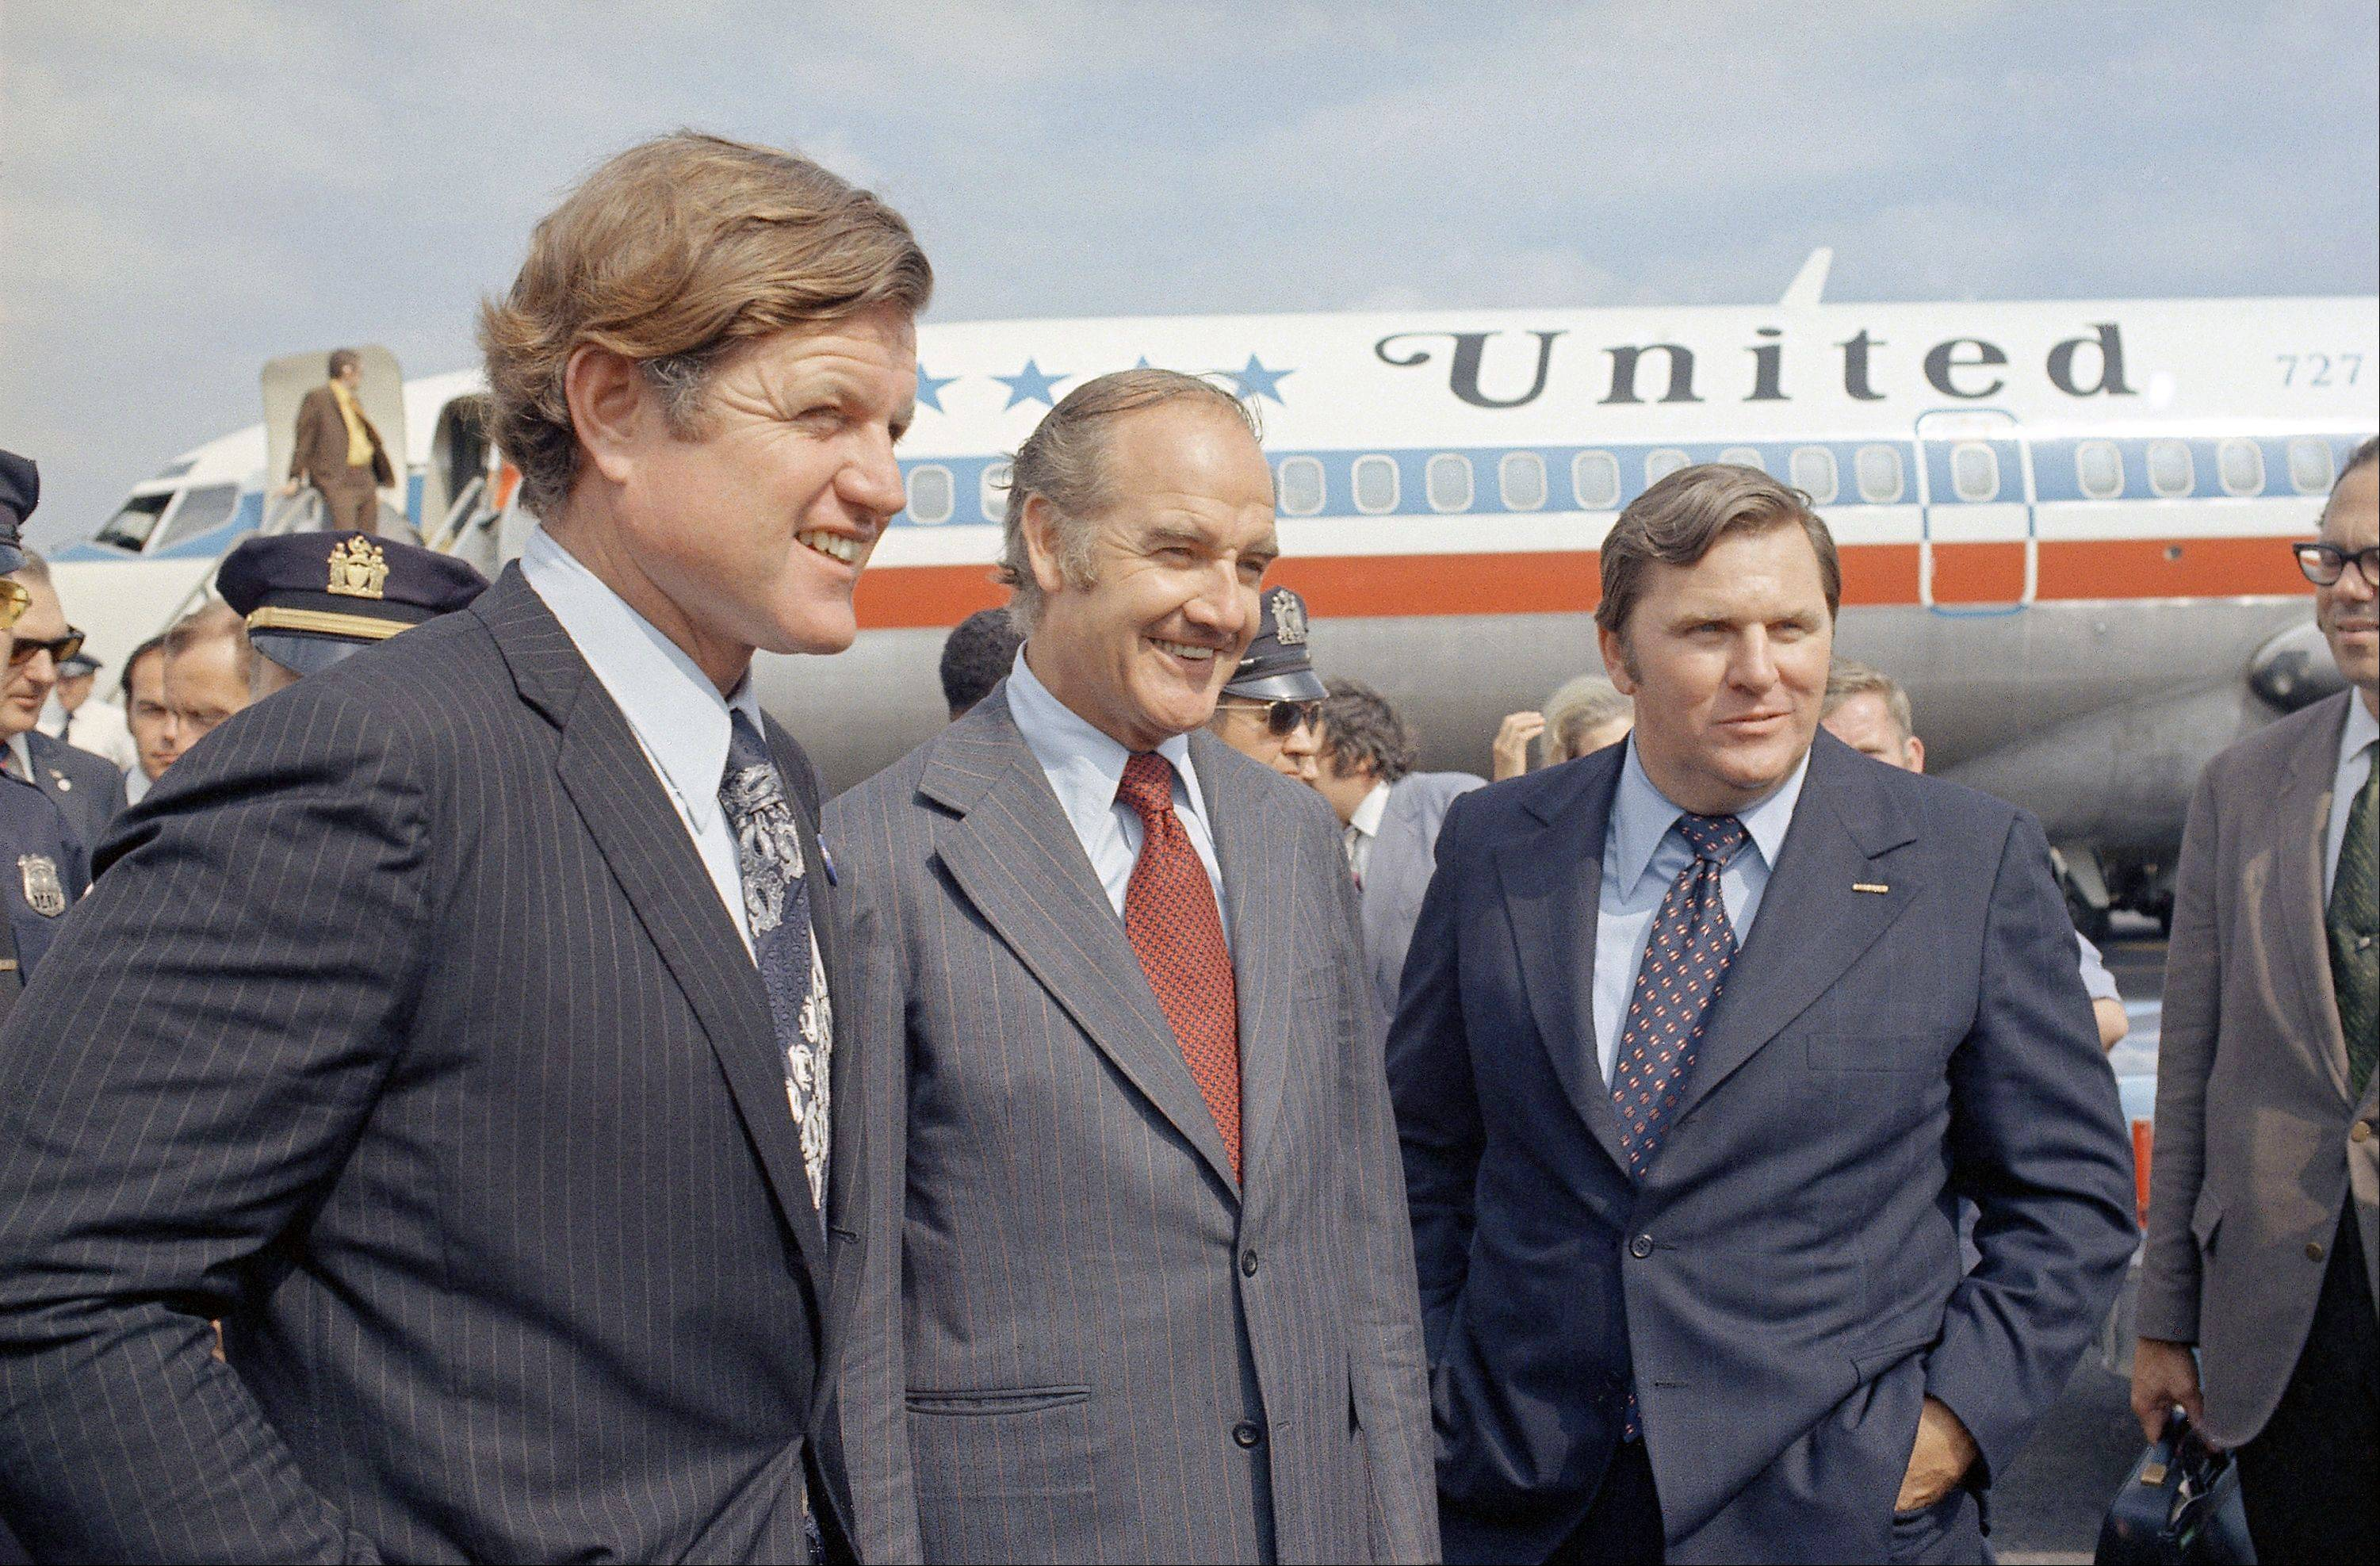 Sen. George McGovern, center, with Sen. Ted Kennedy, left, in New York as they campaign for McGovern for Democratic nominee for president, Sept. 1972.